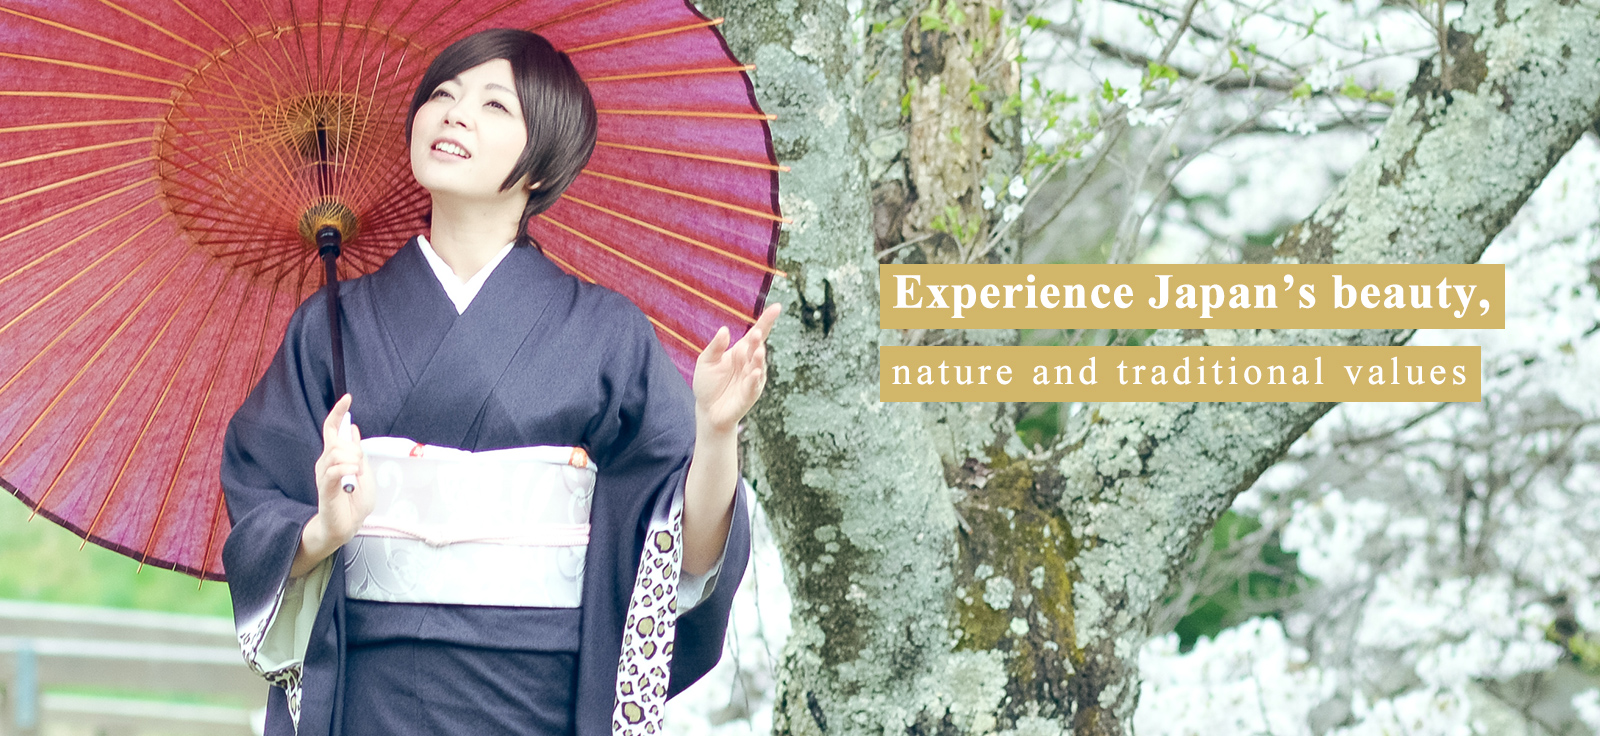 Japan is full of beautiful natural scenery and traditional culture.